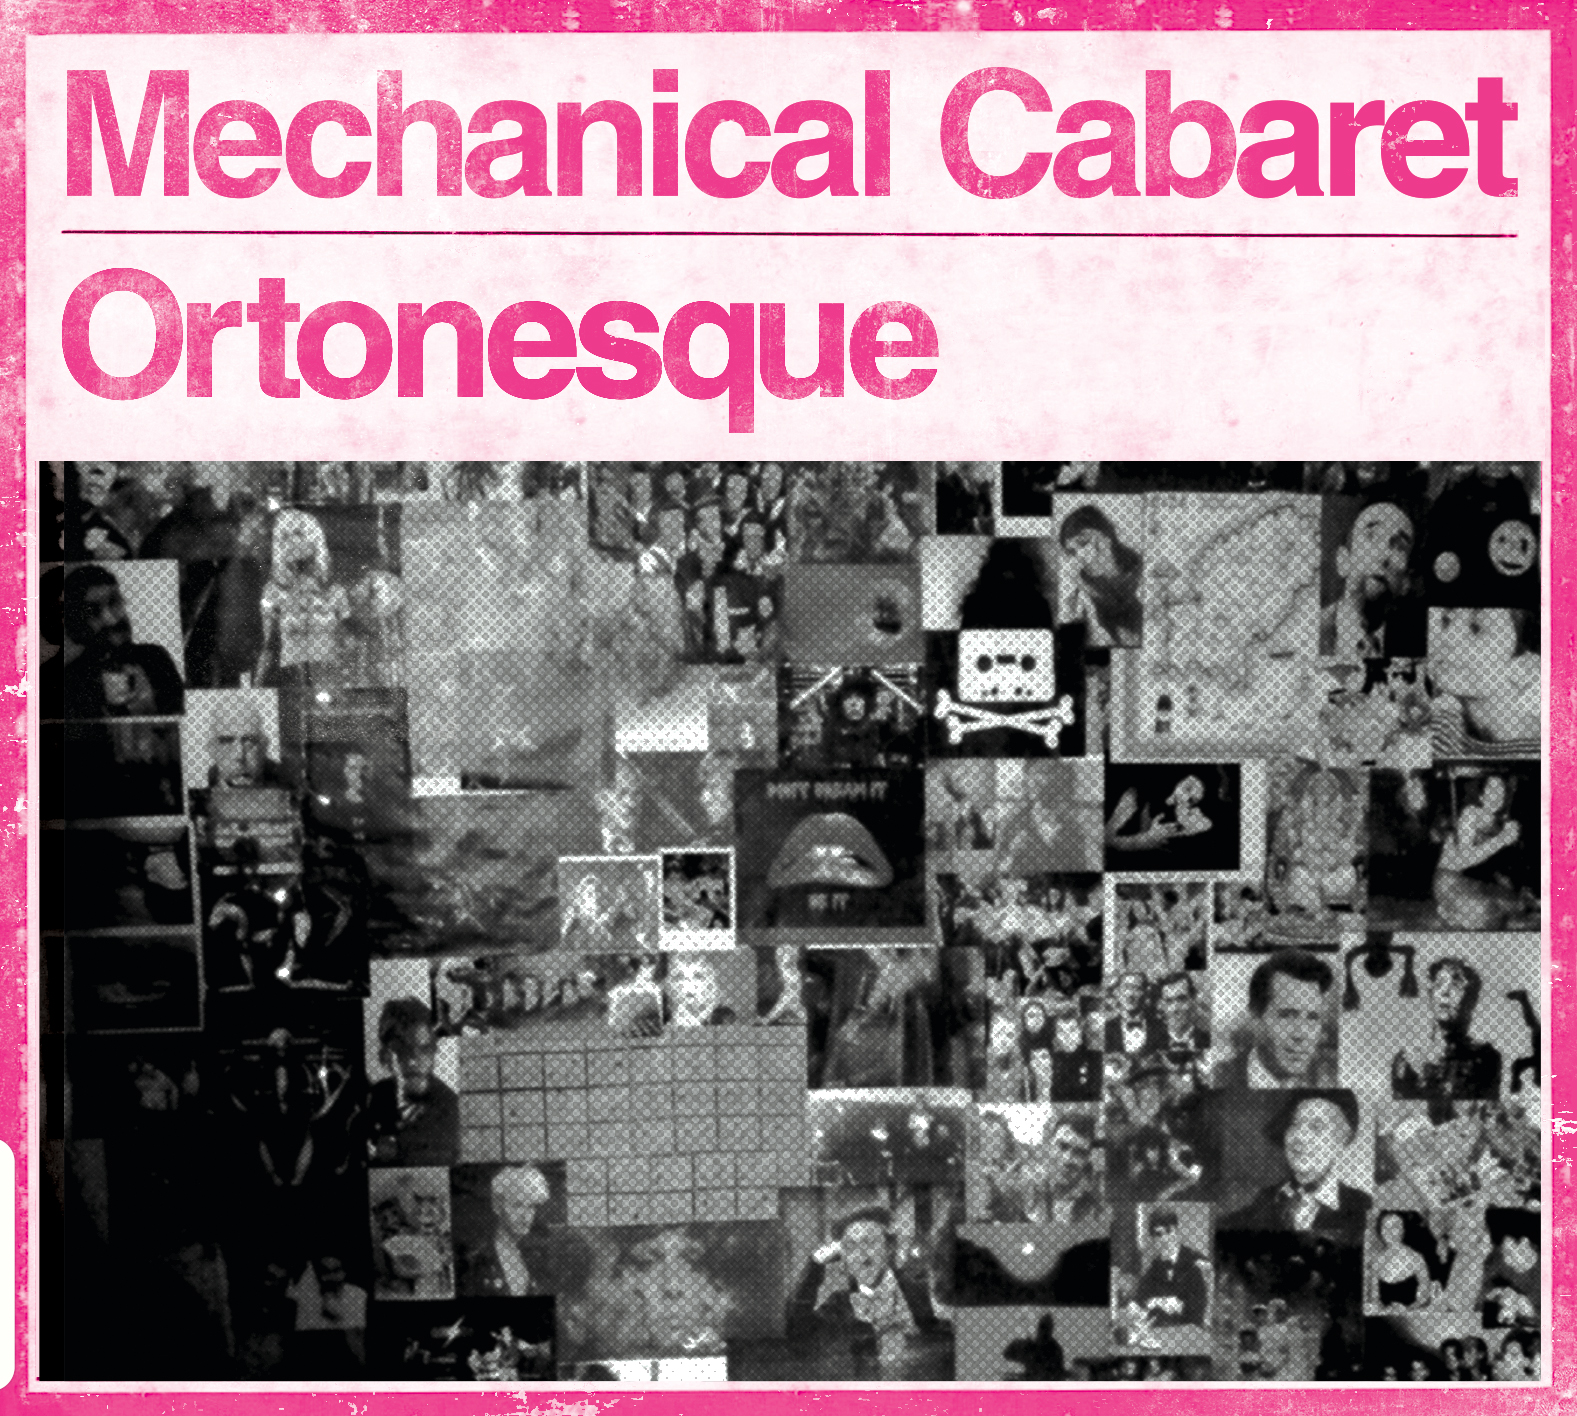 Mechanical Cabaret Ortonesque